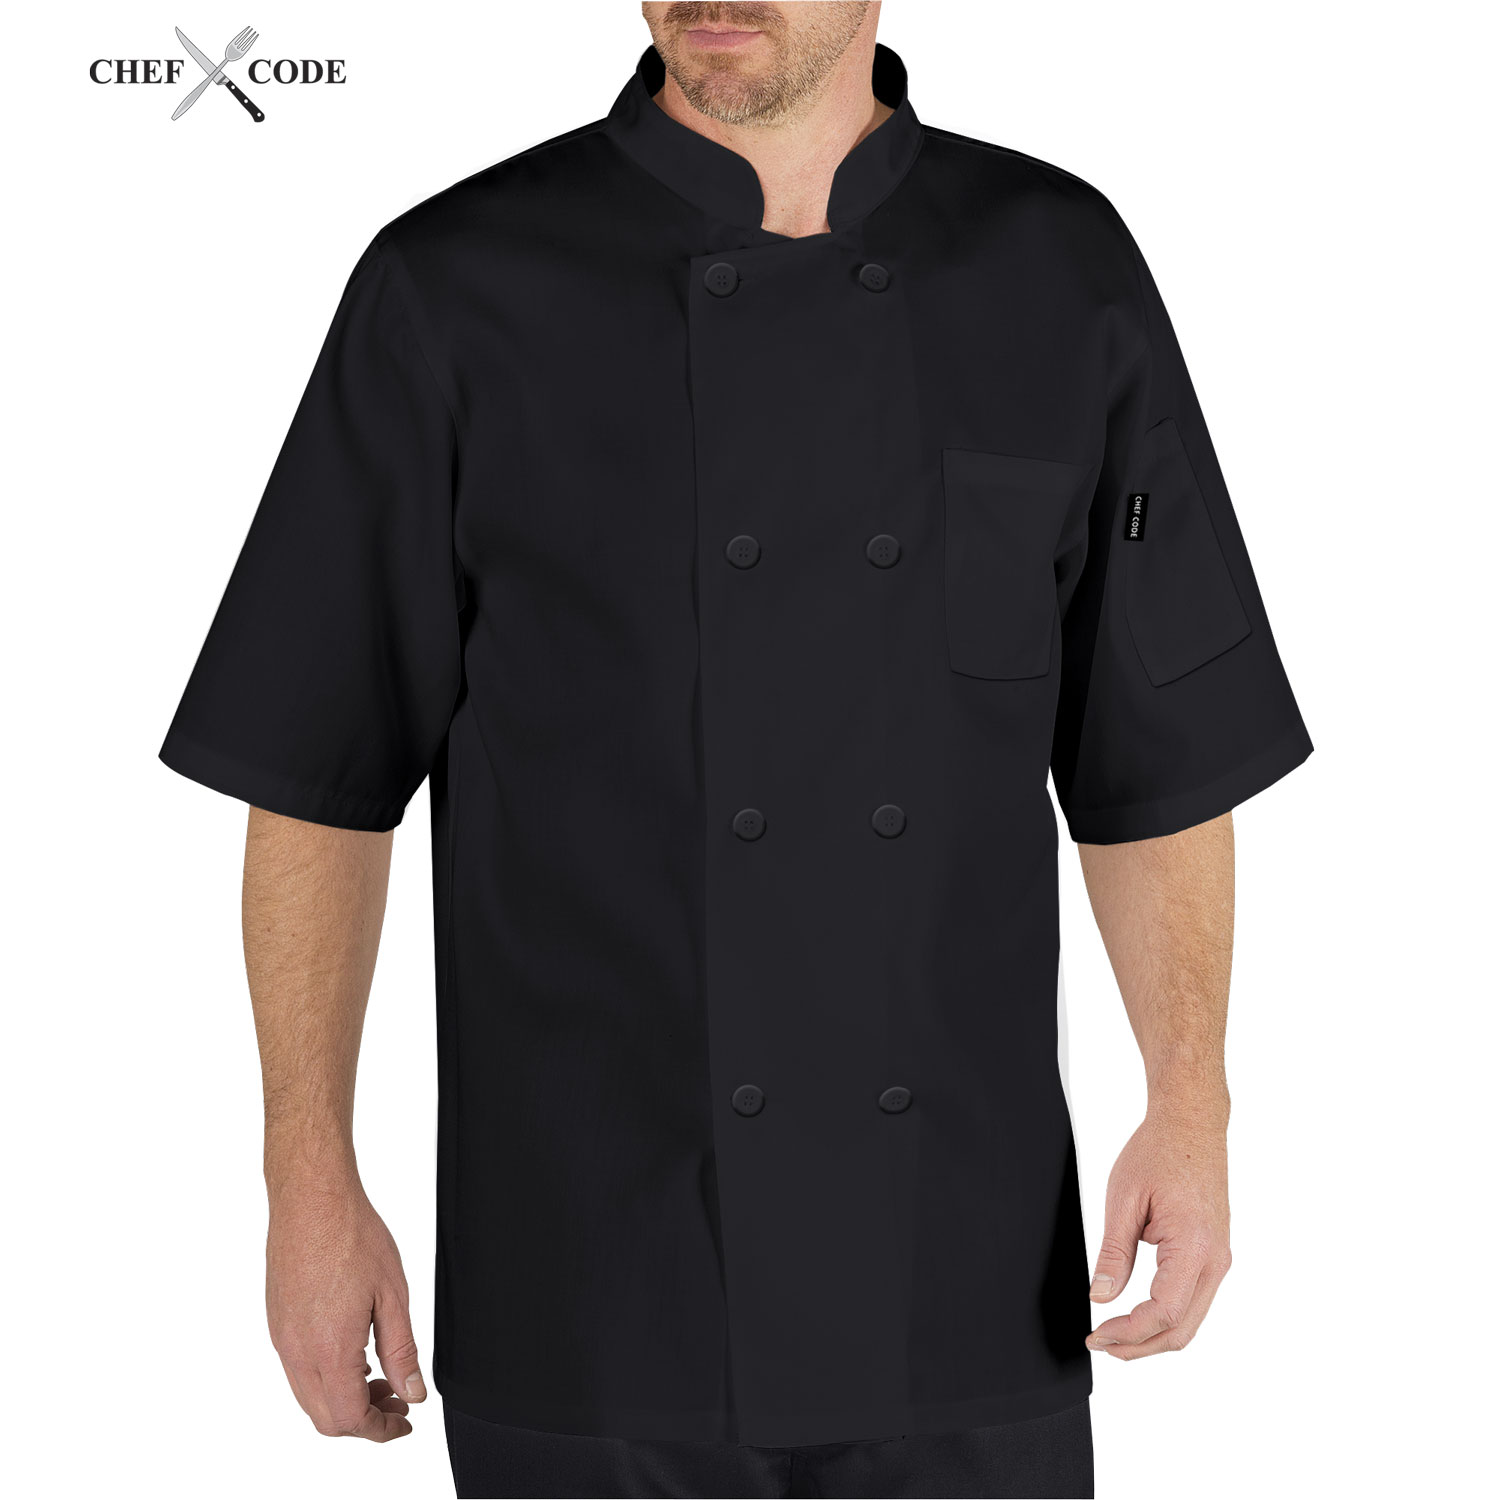 Chef Code Basic Short Sleeve Chef Coat with Pearl Buttons, Chef Jacket CC124 by